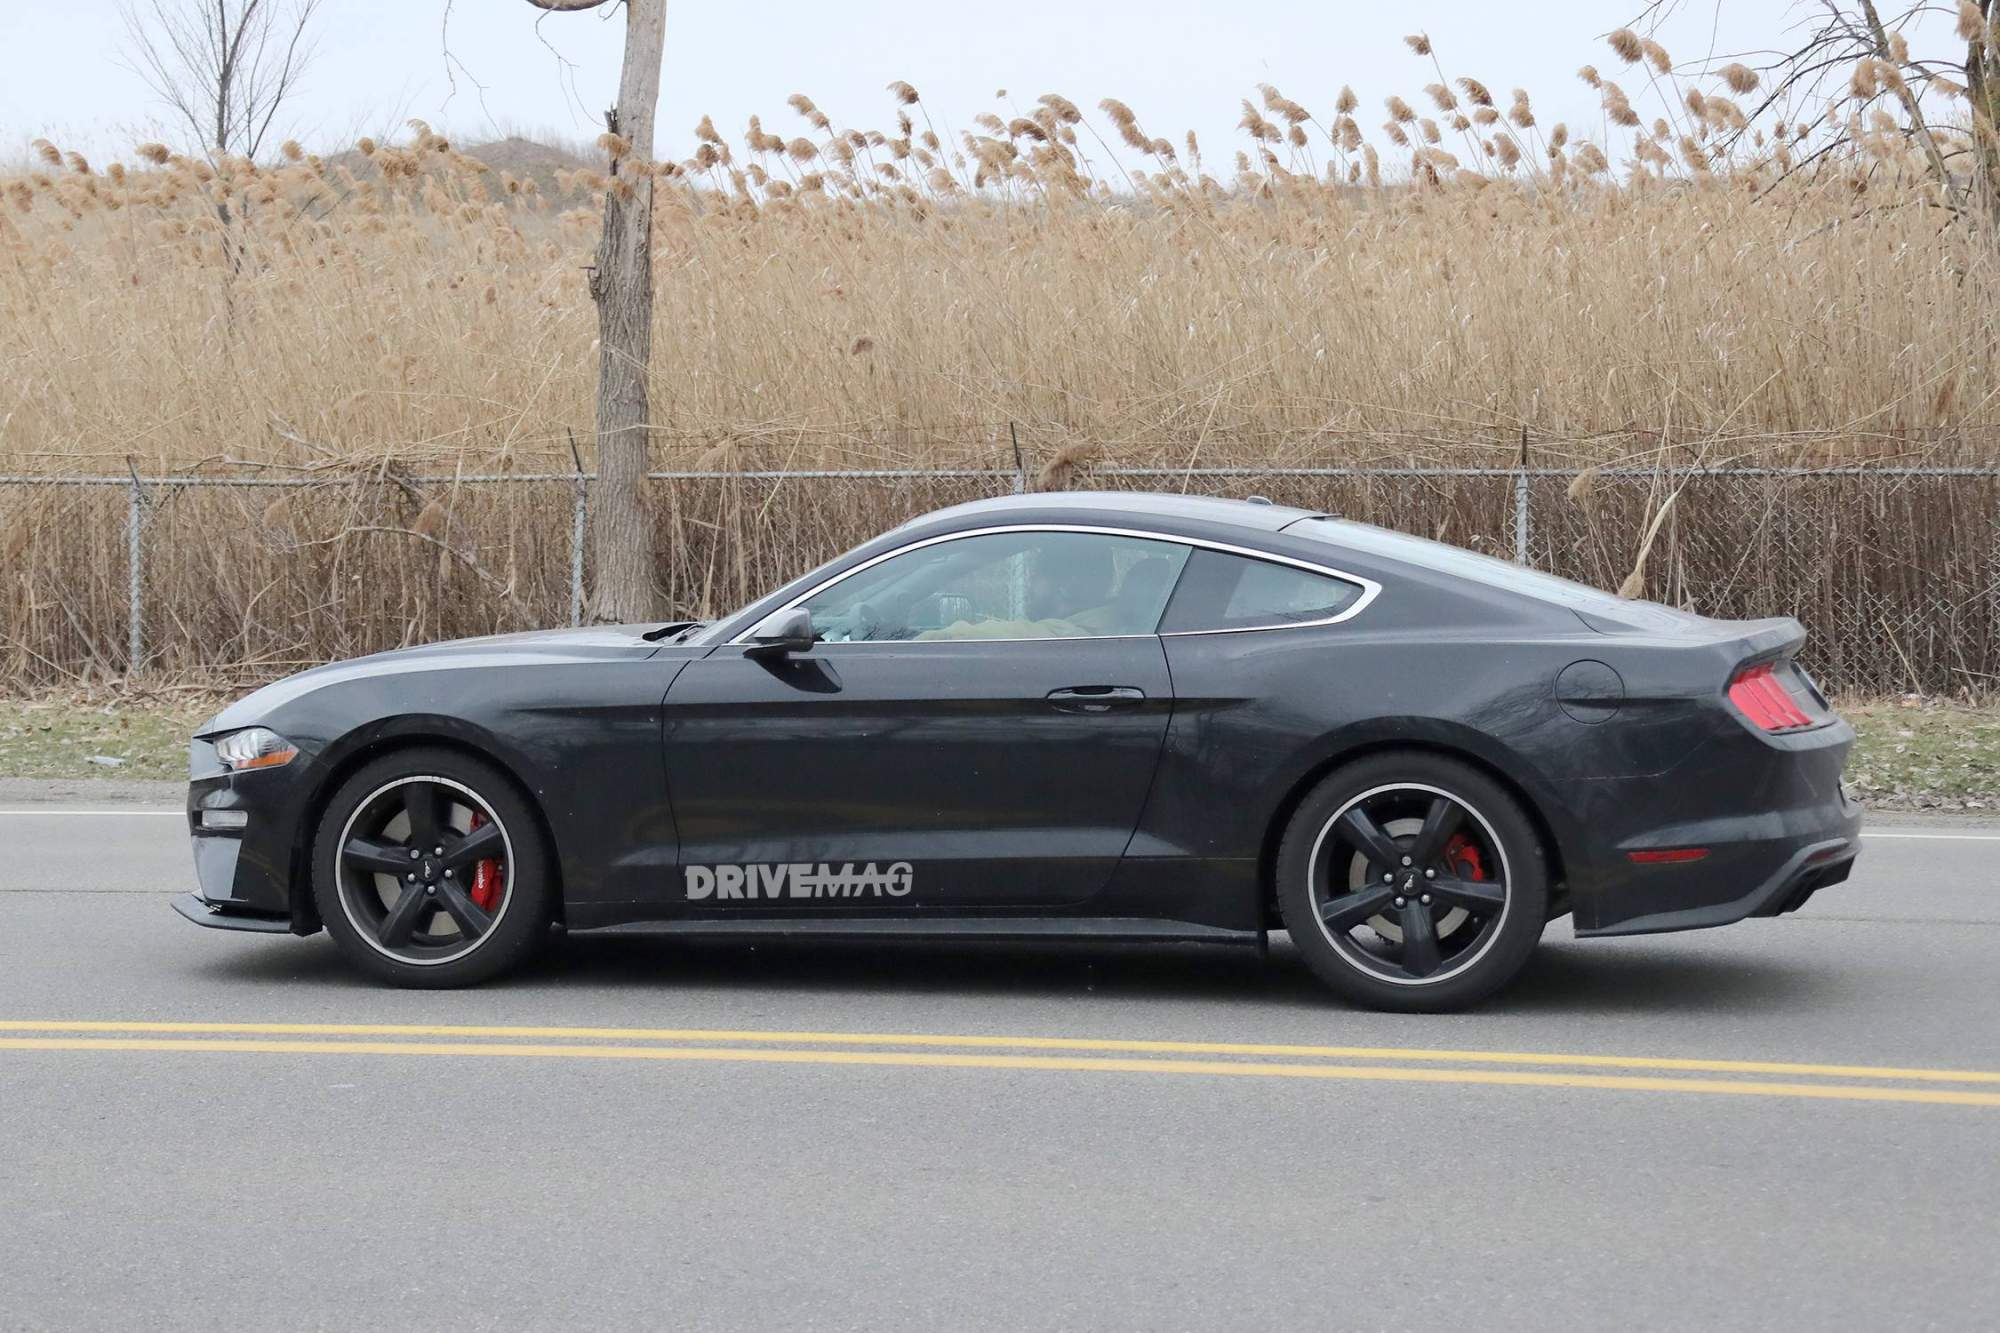 Check out the first photos of the 2019 Ford Mustang Bullitt in